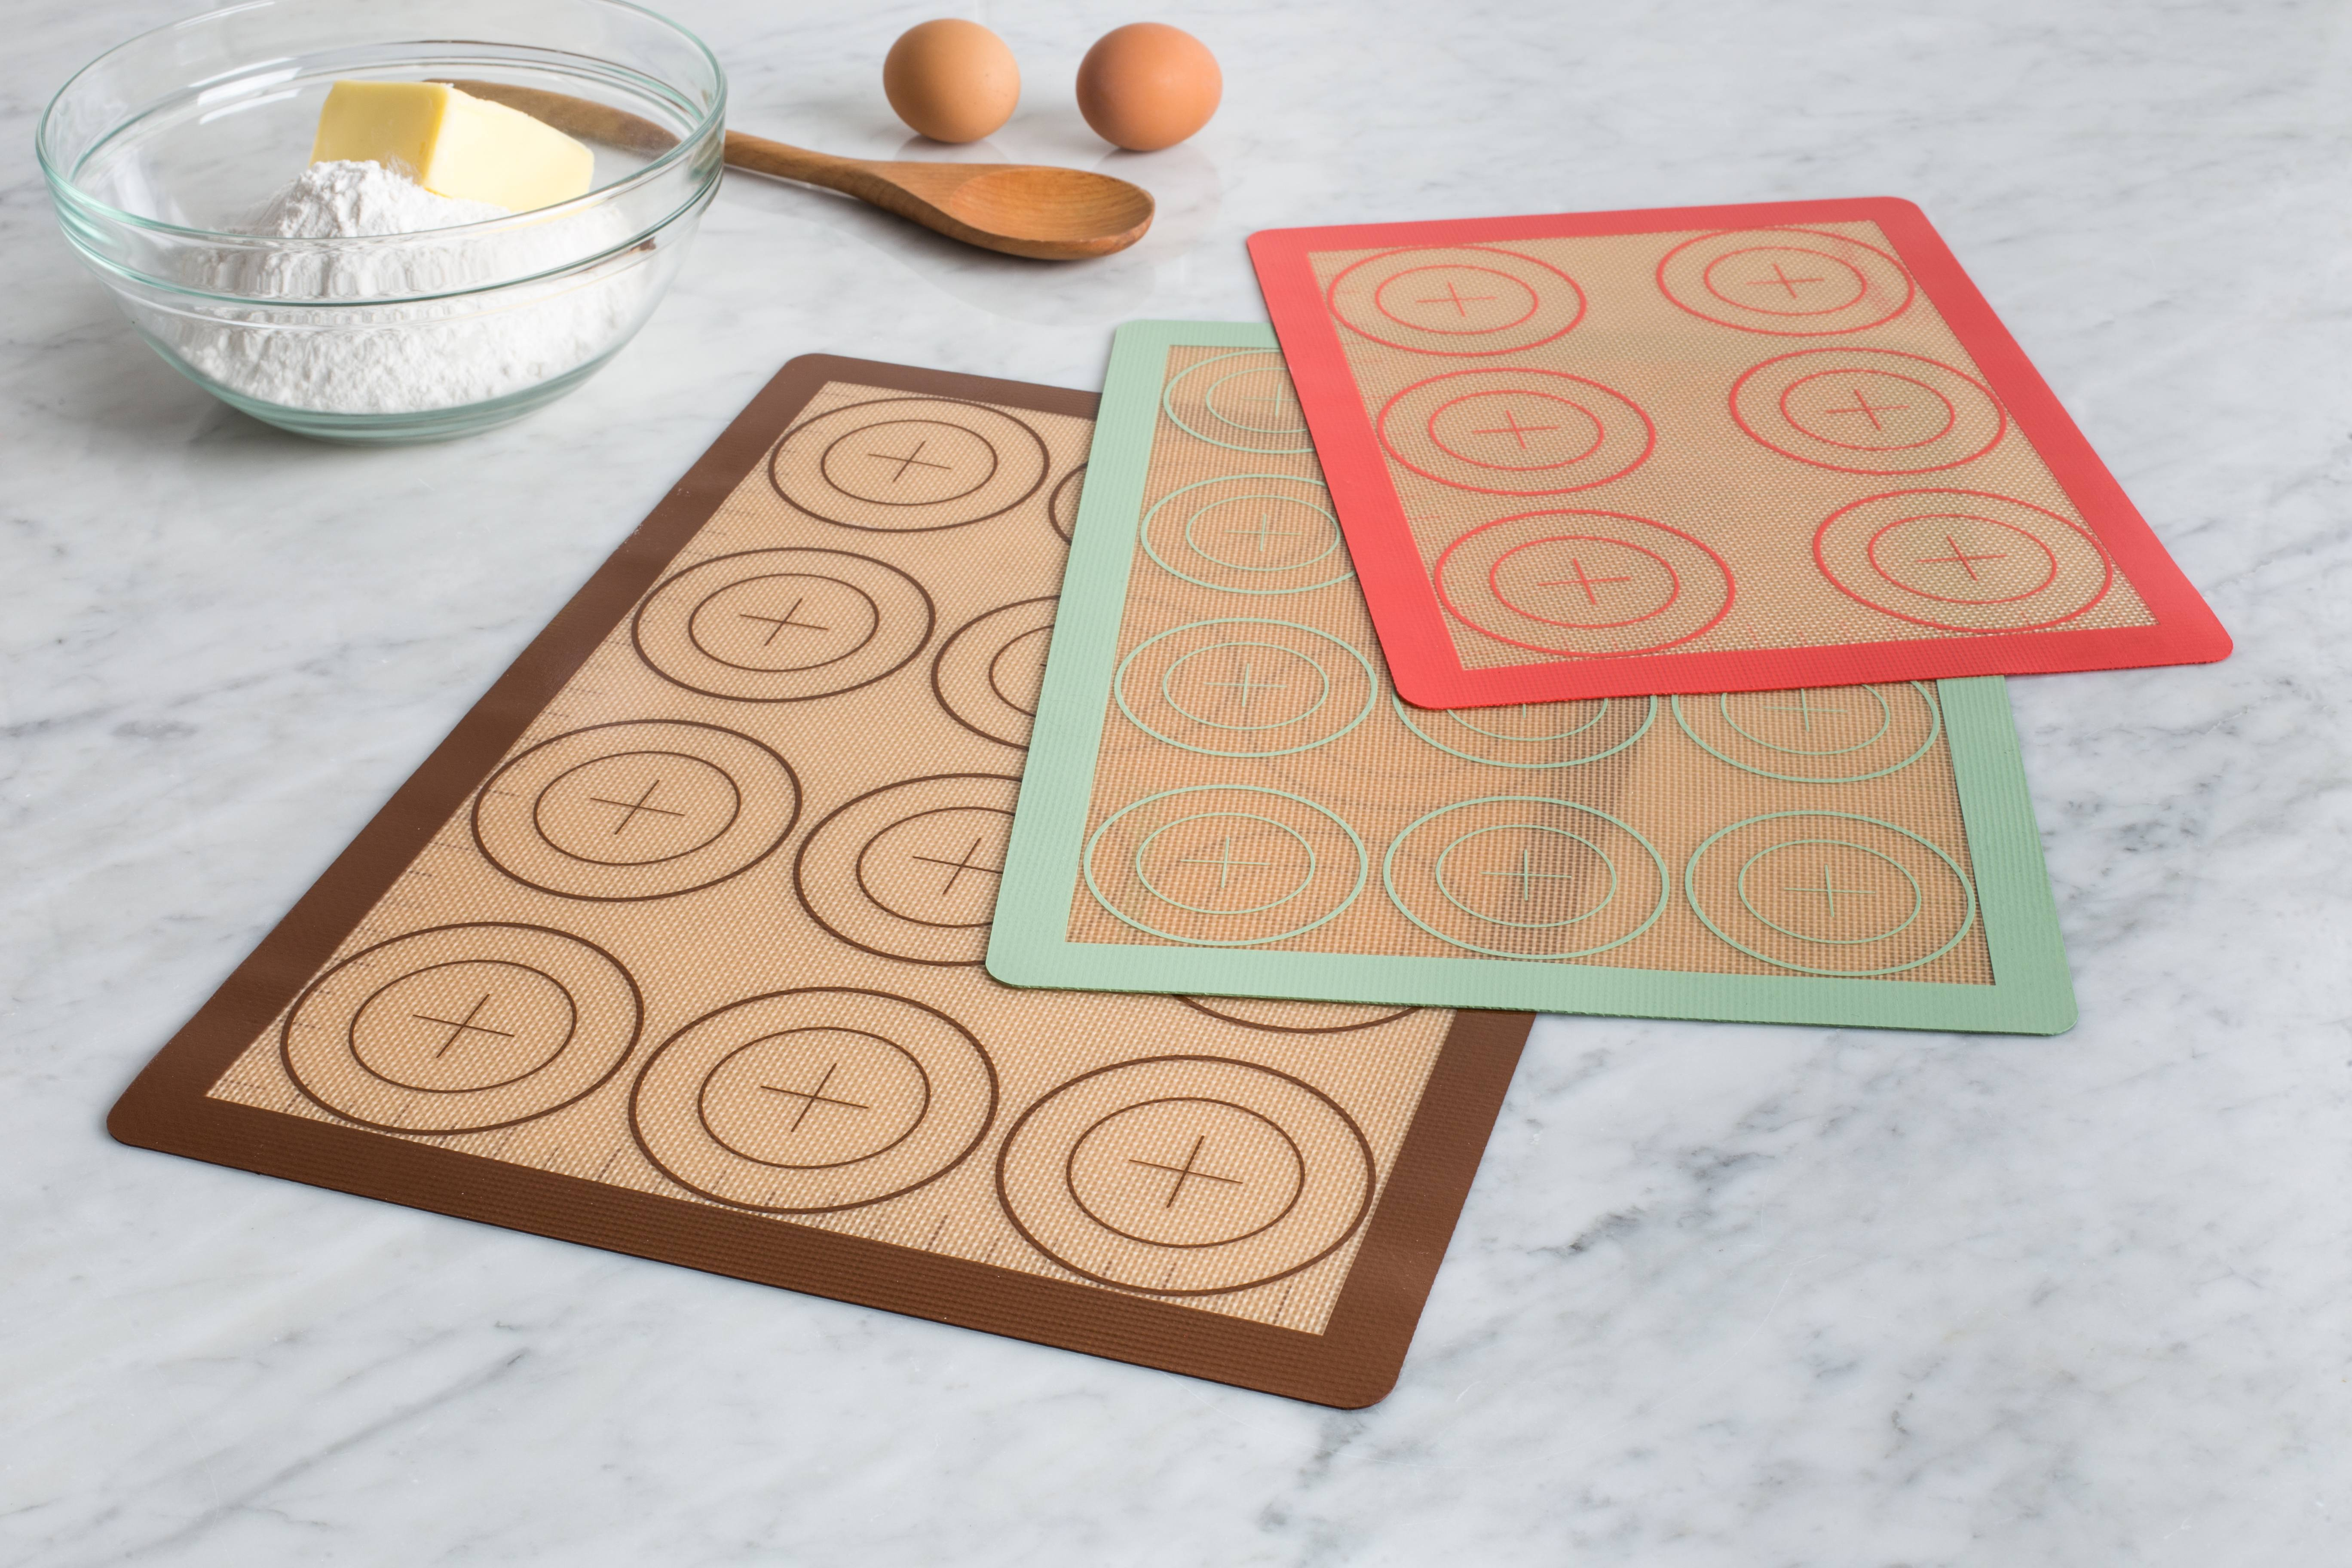 3 silicone baking sheets